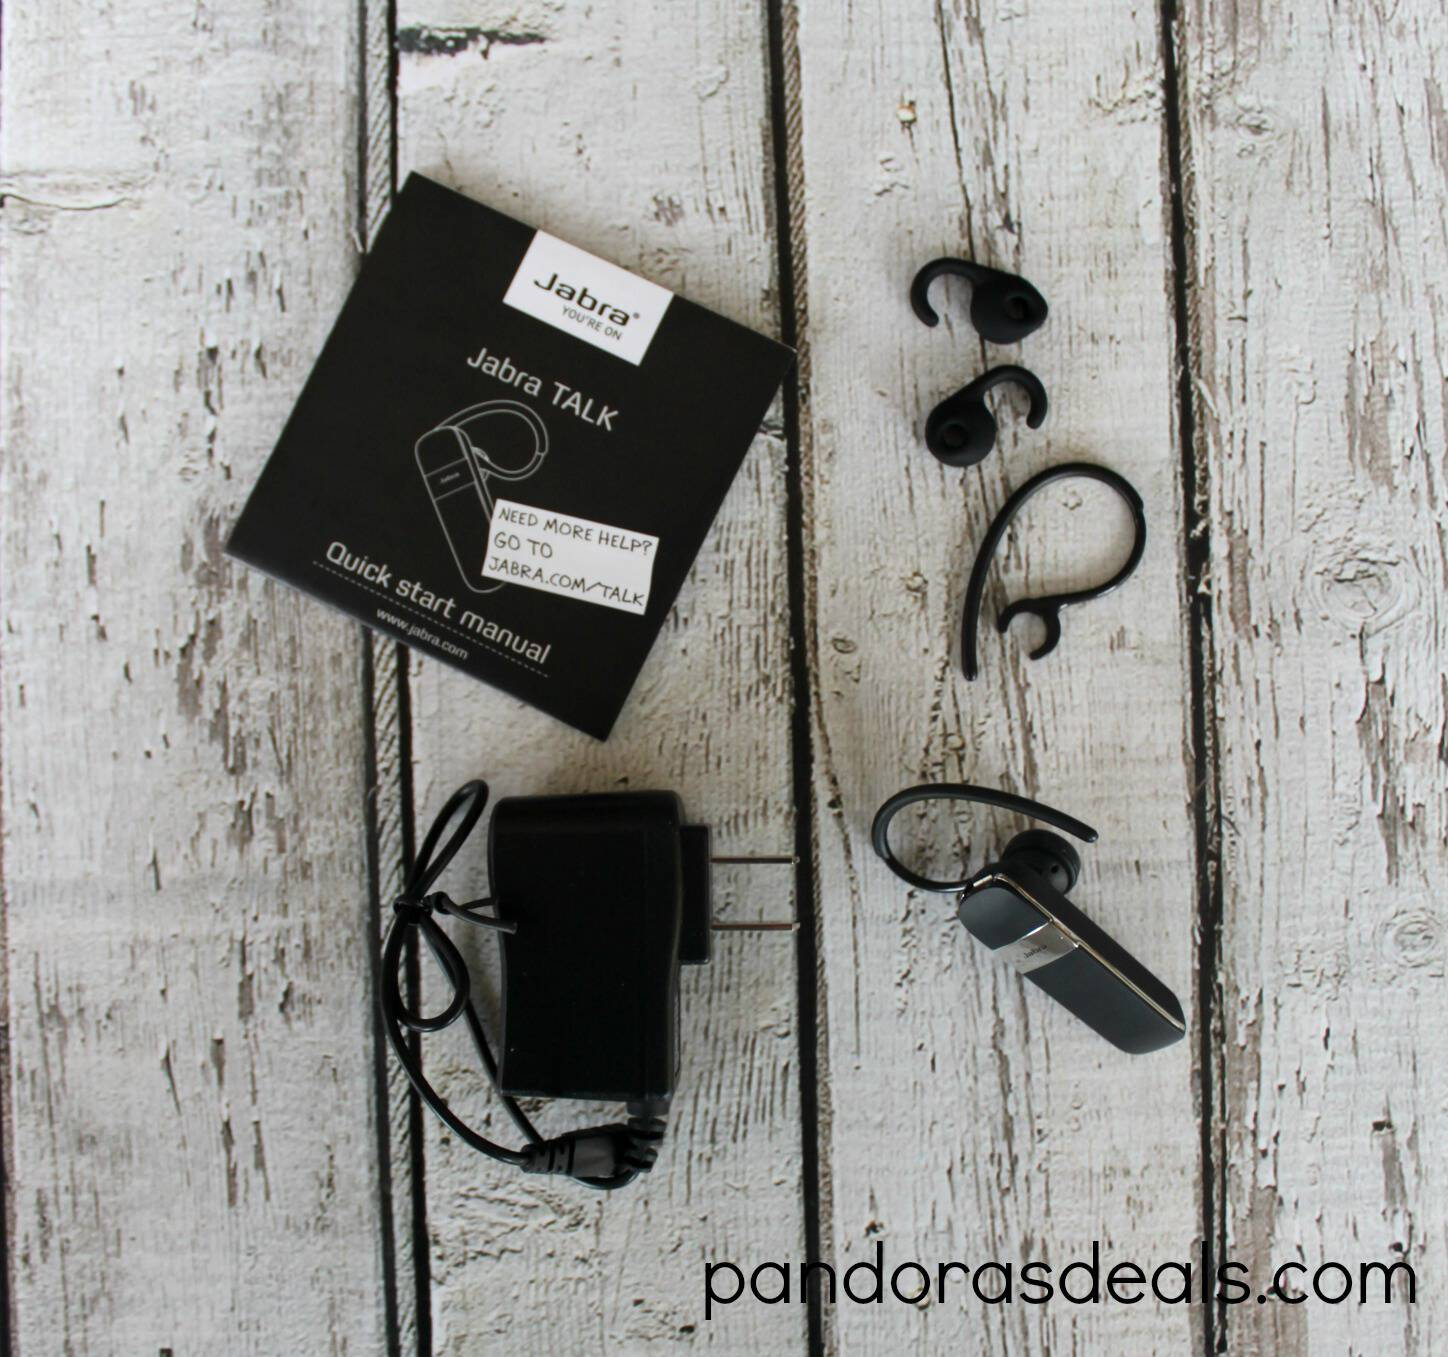 Jabra Talk Review